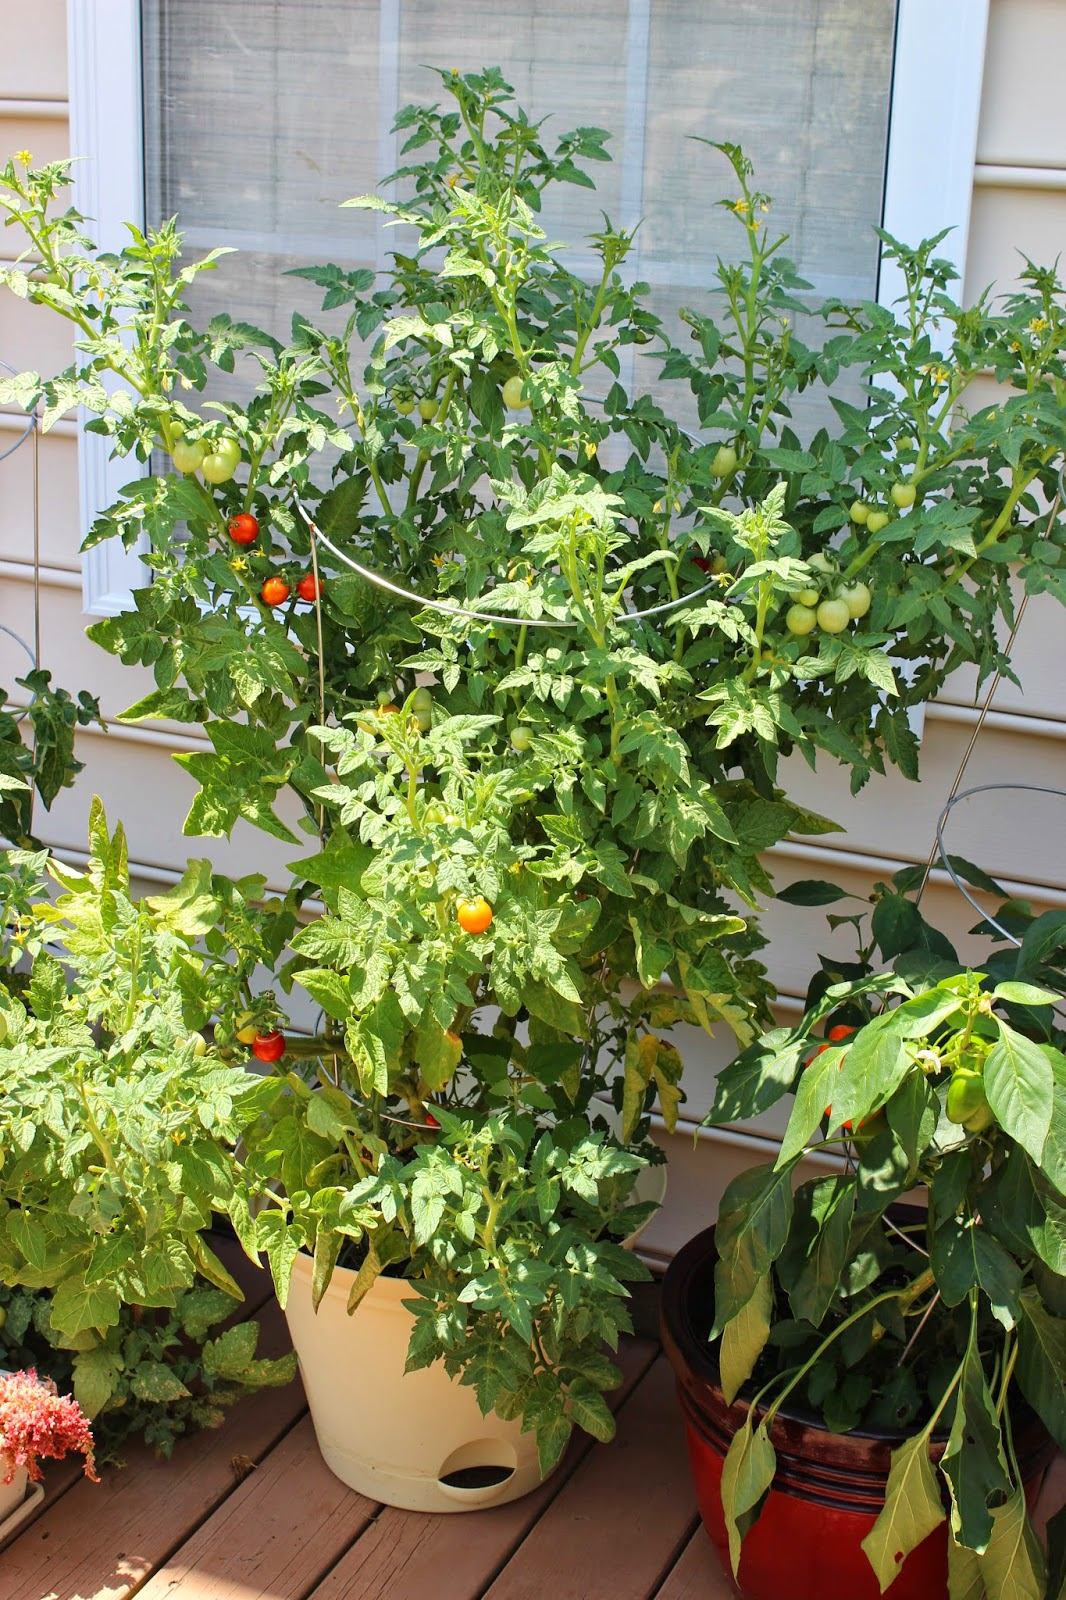 Picture of a cherry tomato plant in a grey pot in front of a window